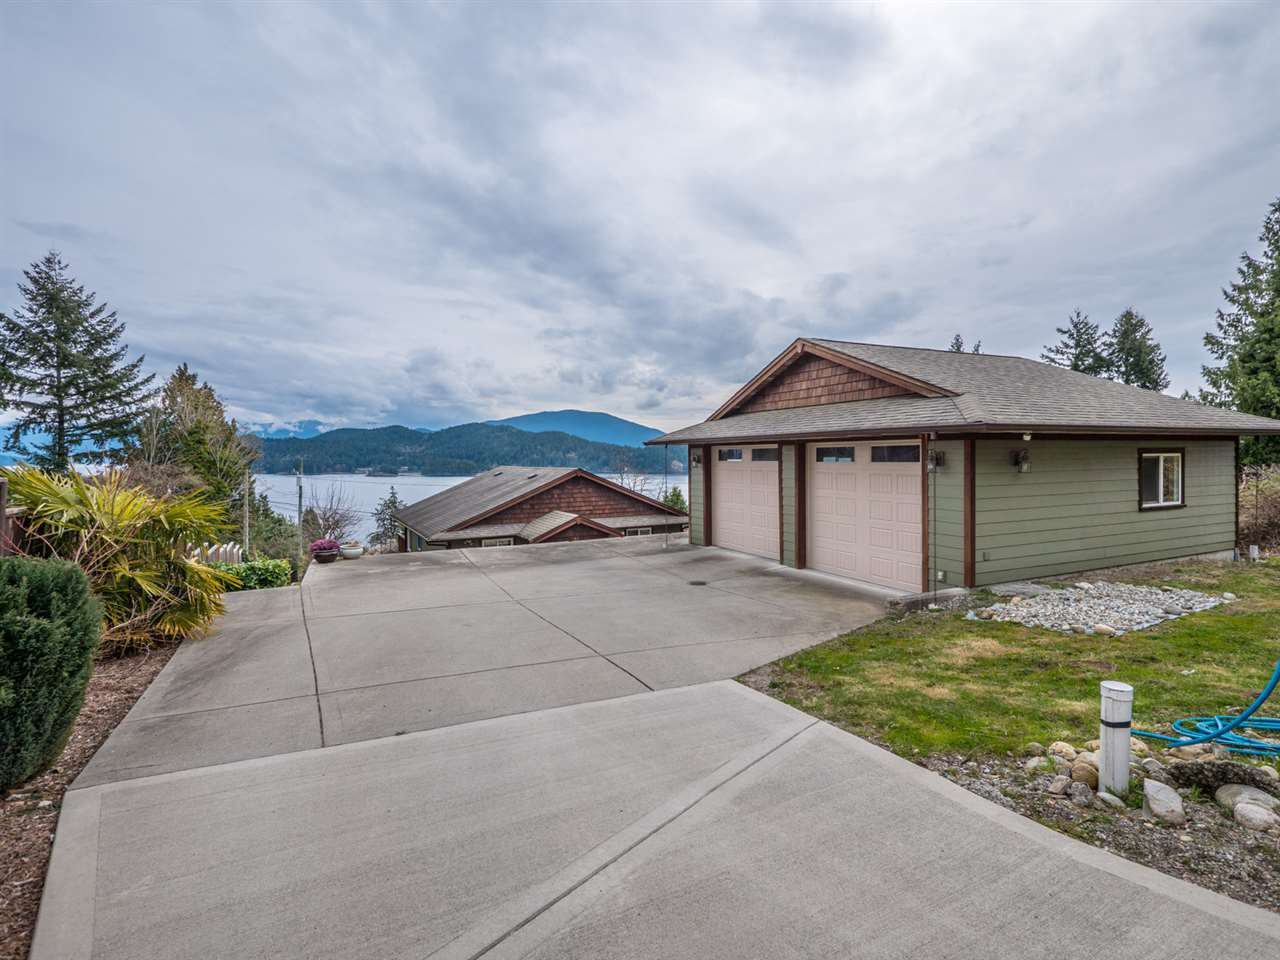 Photo 19: Photos: 588 N FLETCHER Road in Gibsons: Gibsons & Area House for sale (Sunshine Coast)  : MLS®# R2254074